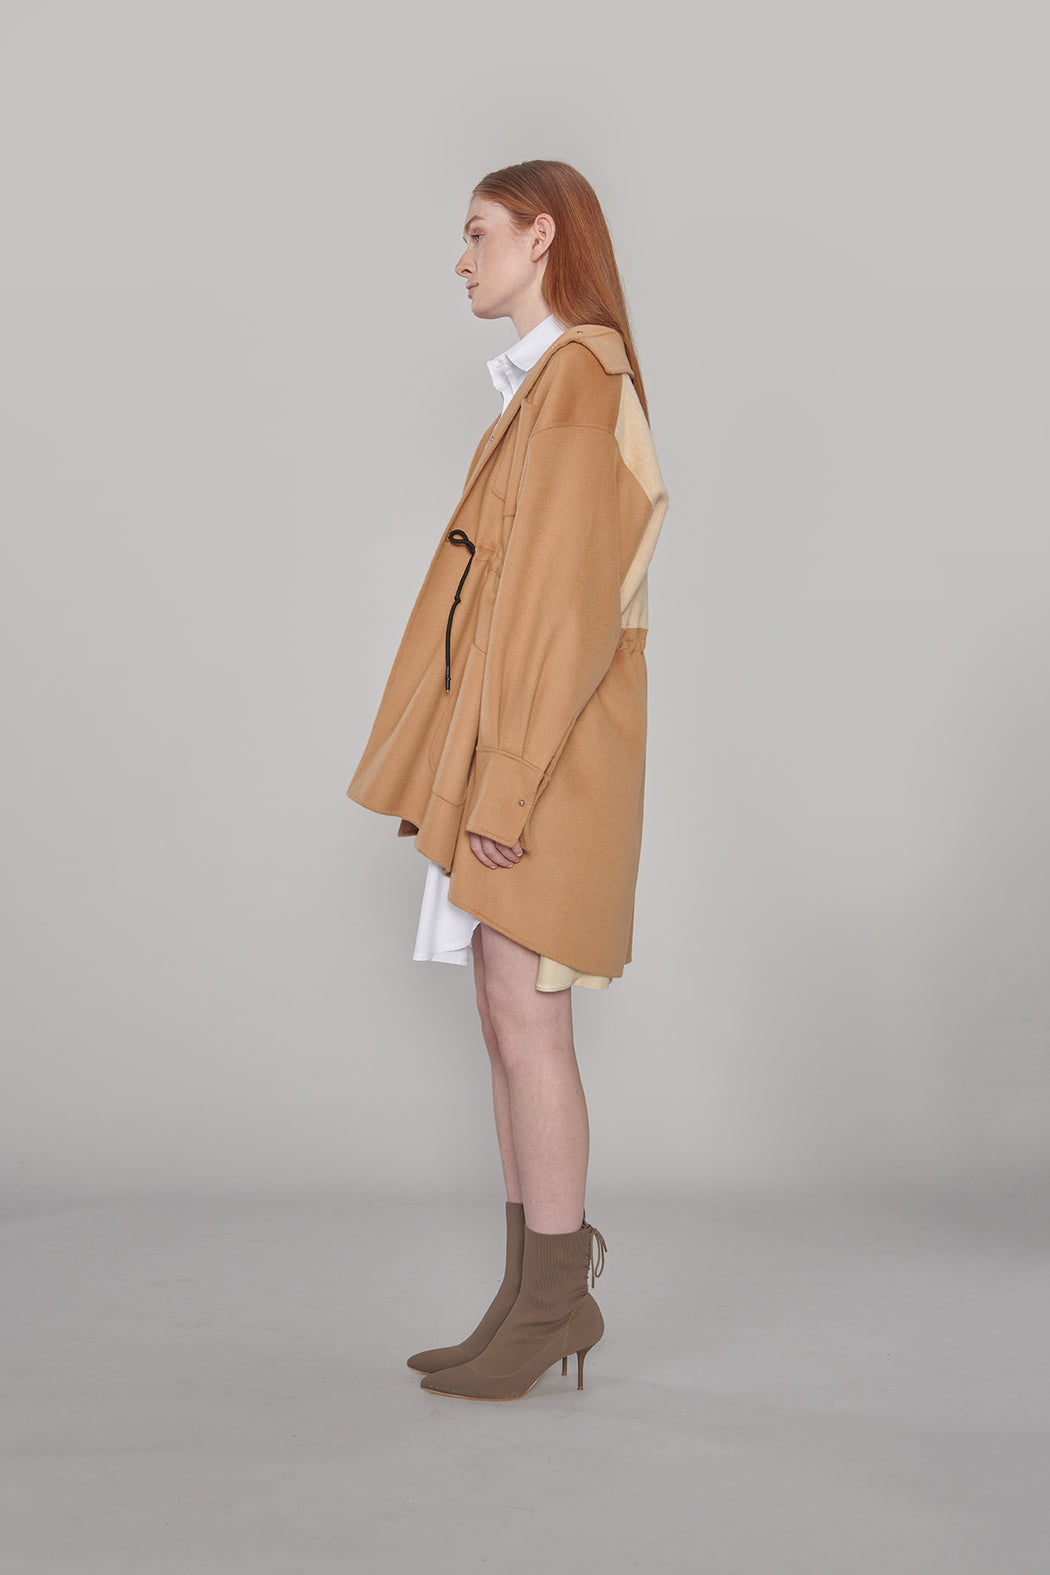 JL037A Cashmere-Wool Color Block Parka